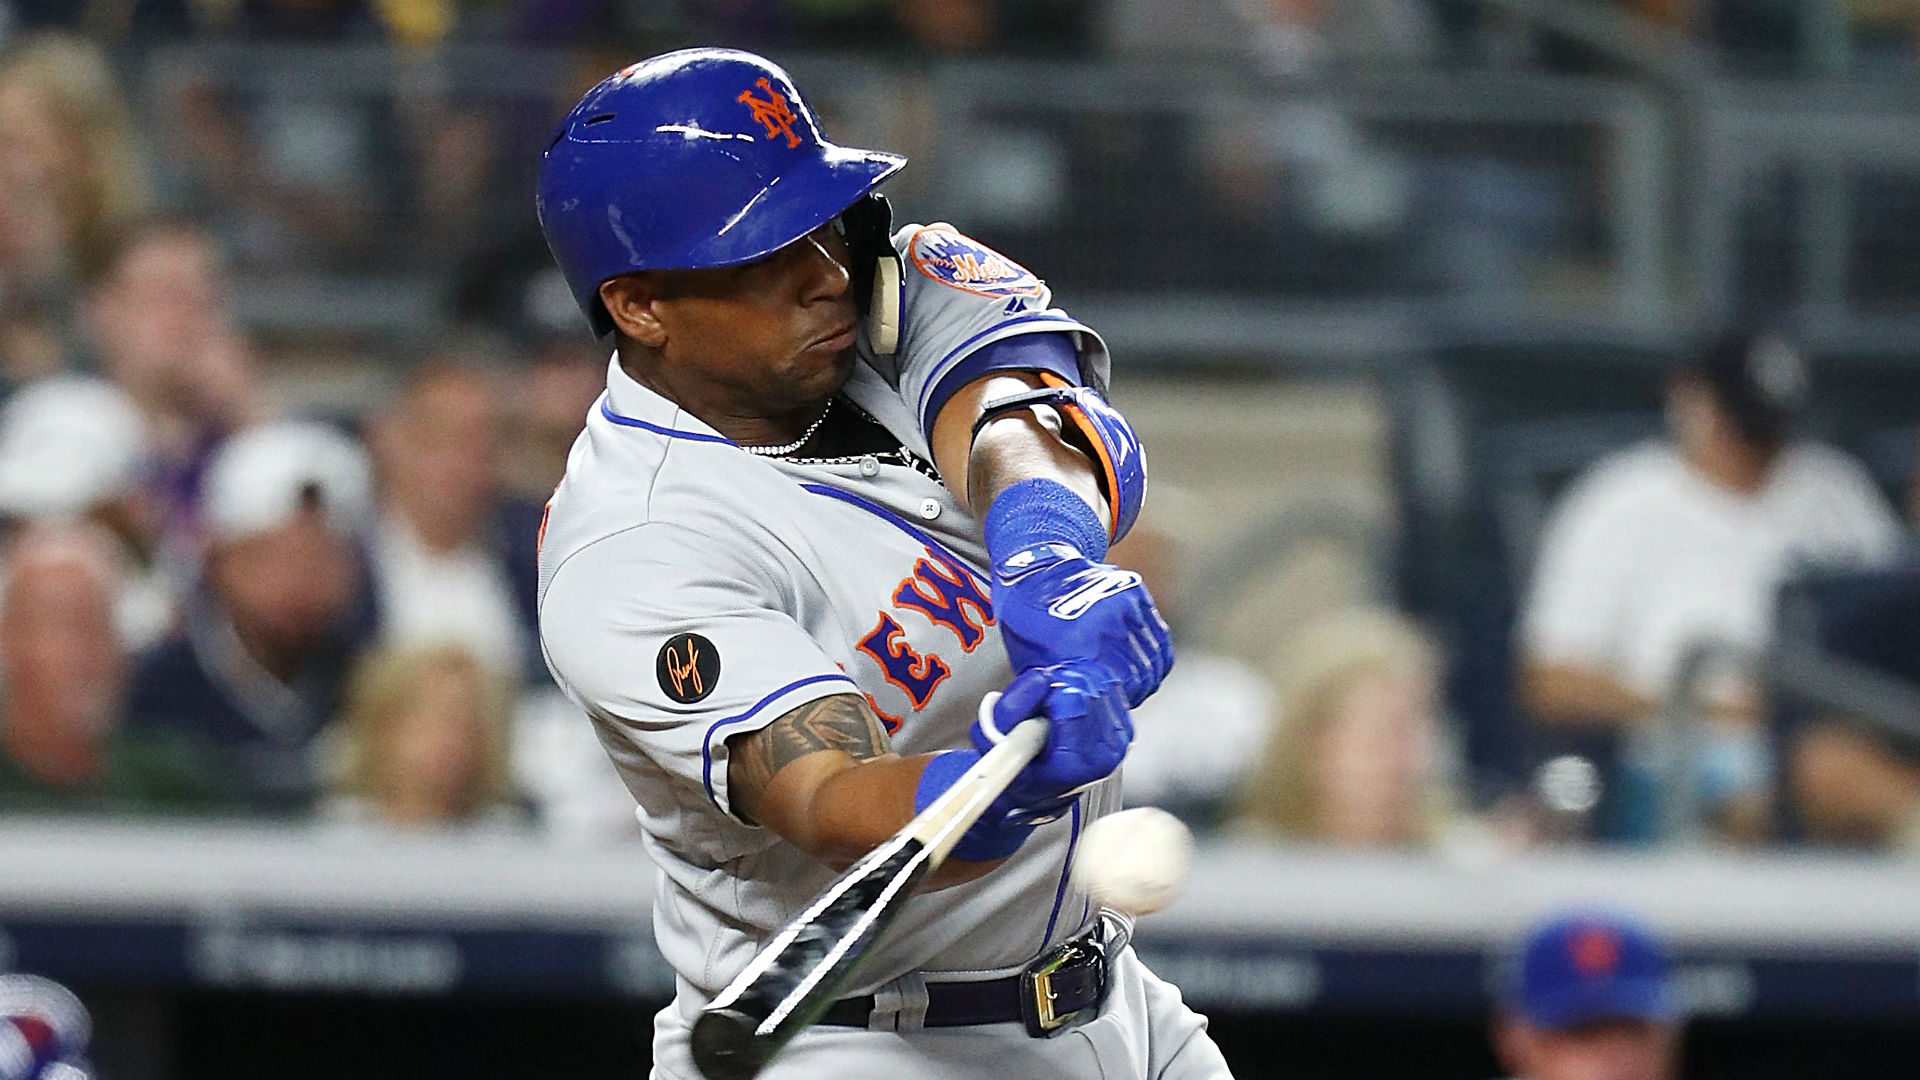 Mets address Cespedes situation: 'Surgery is a last resort thing'